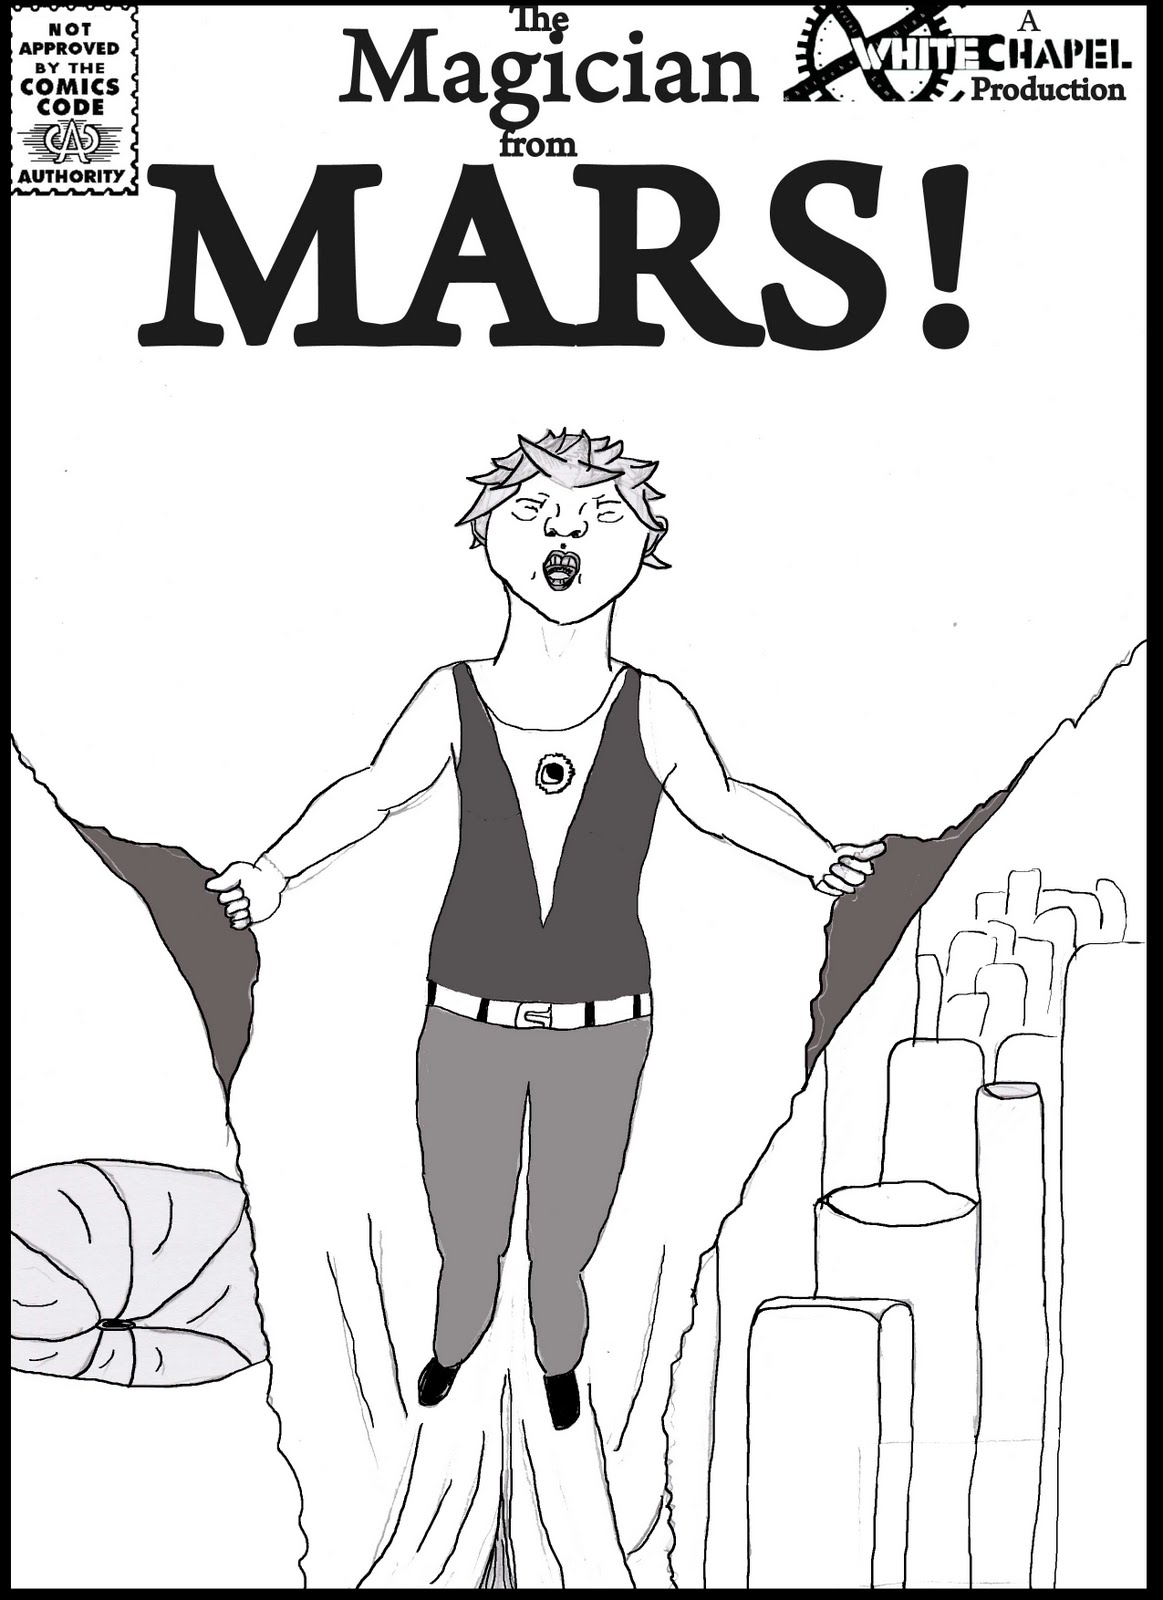 Magician from Mars, by Jamie